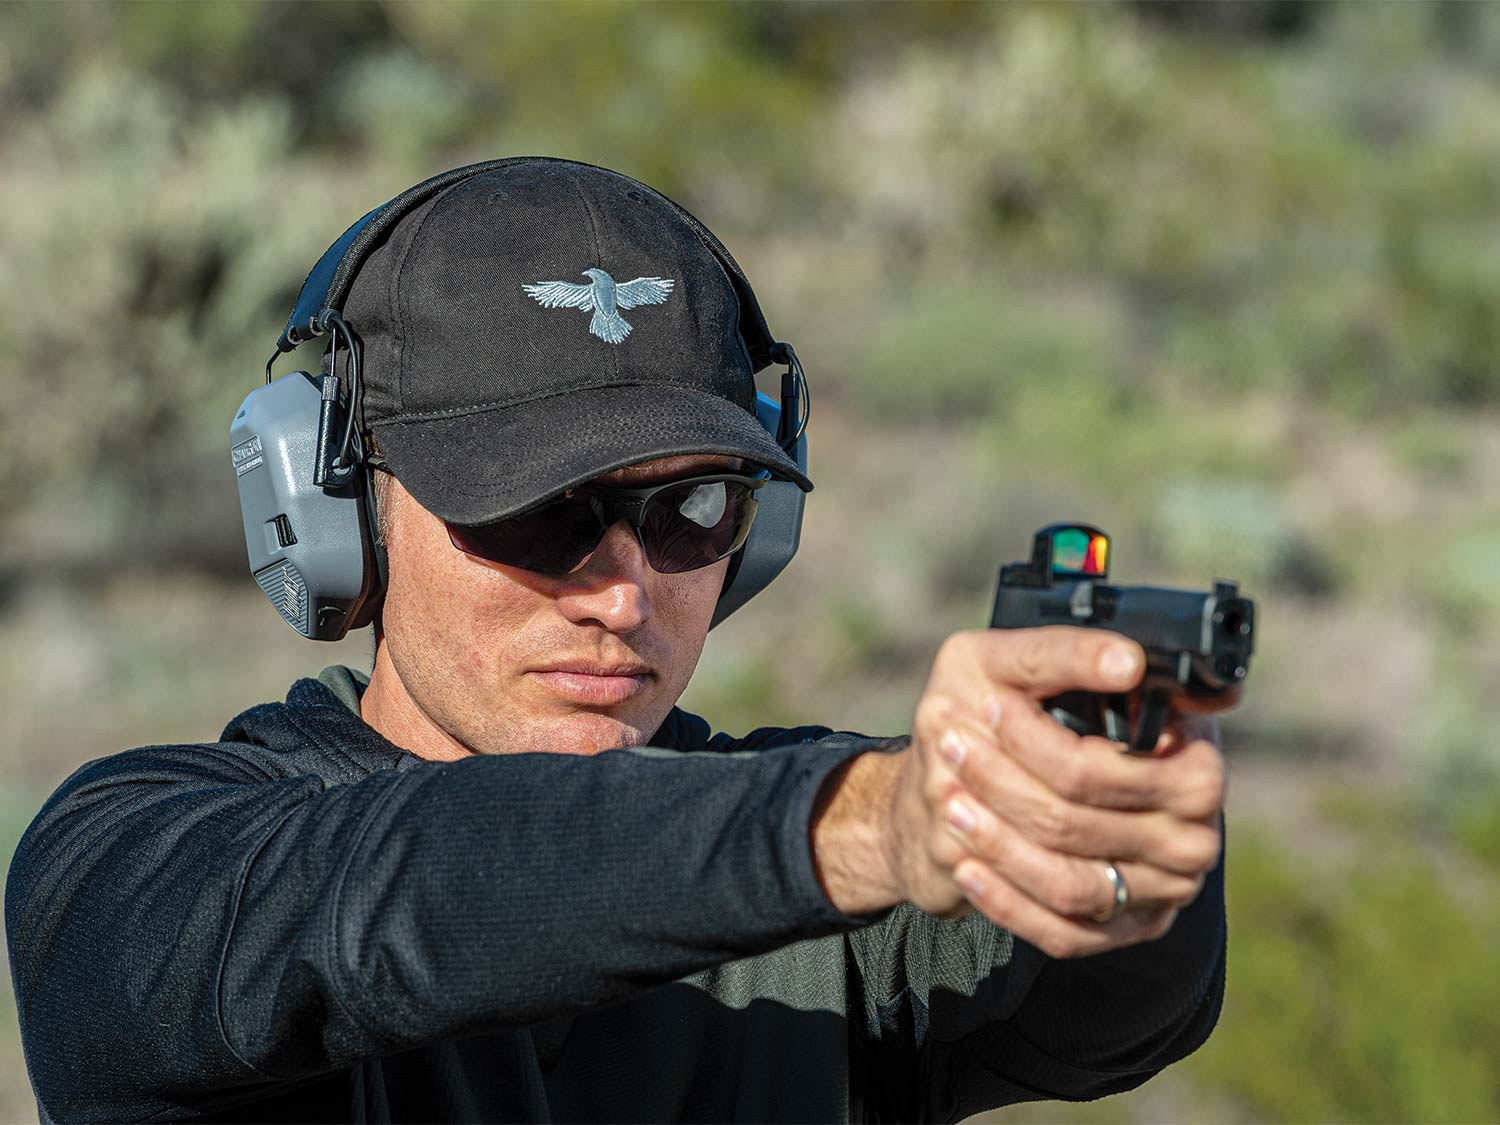 A shooter in Arizona prepares to ring steel with an RDS-equipped pistol.